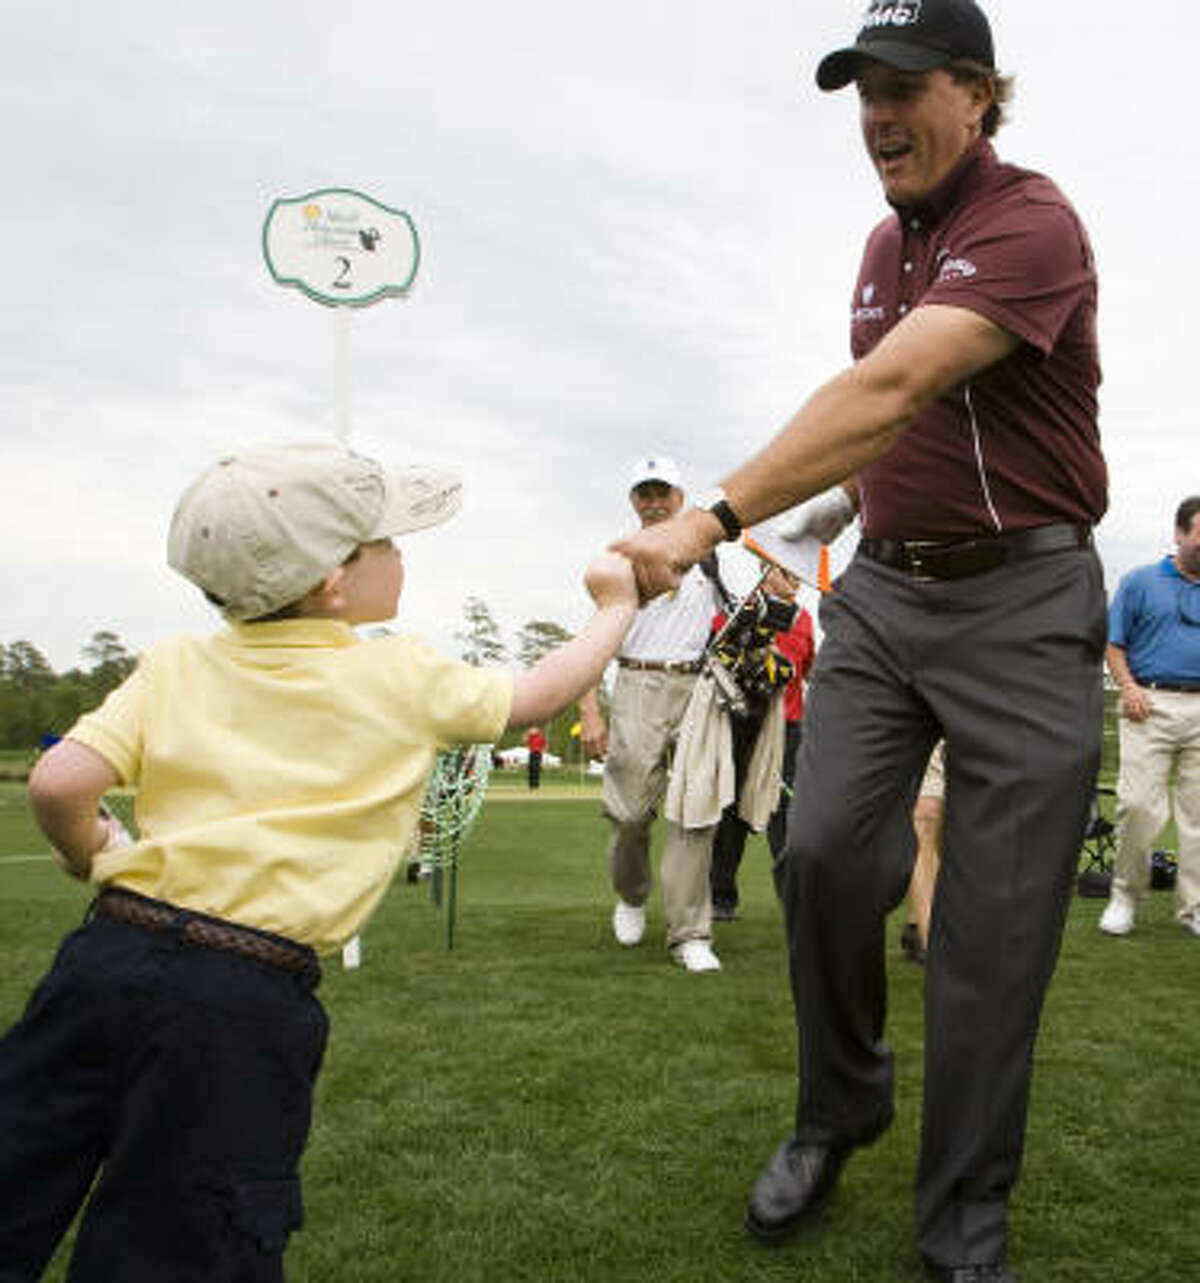 Colin Doran, 4, of Tomball, bumps fists with Phil Mickelson as Mickelson comes off the No. 2 green.